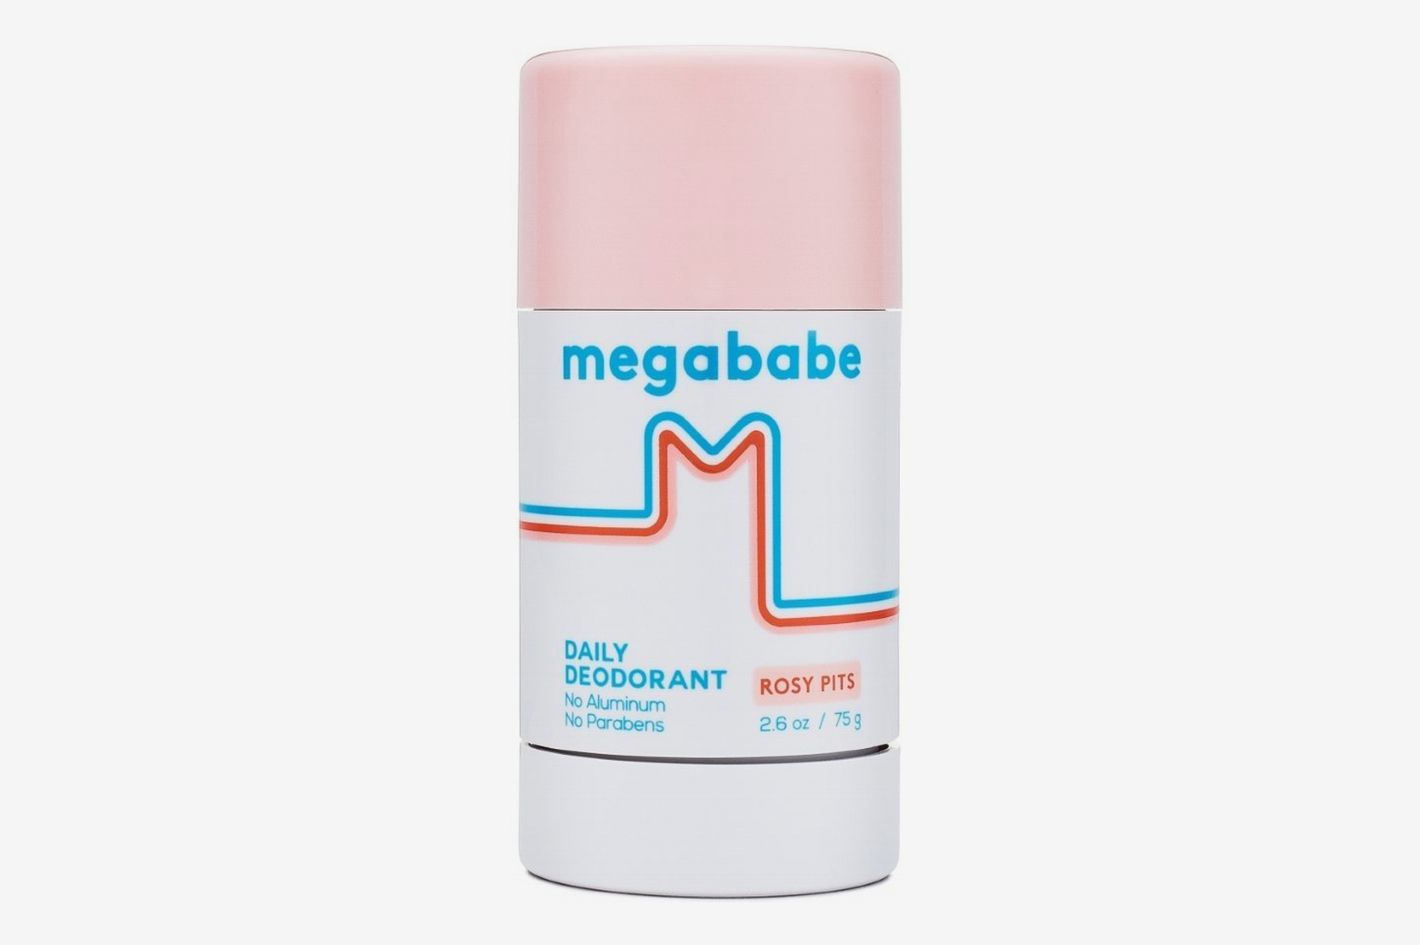 Megababe Rosy Pits Daily Deodorant